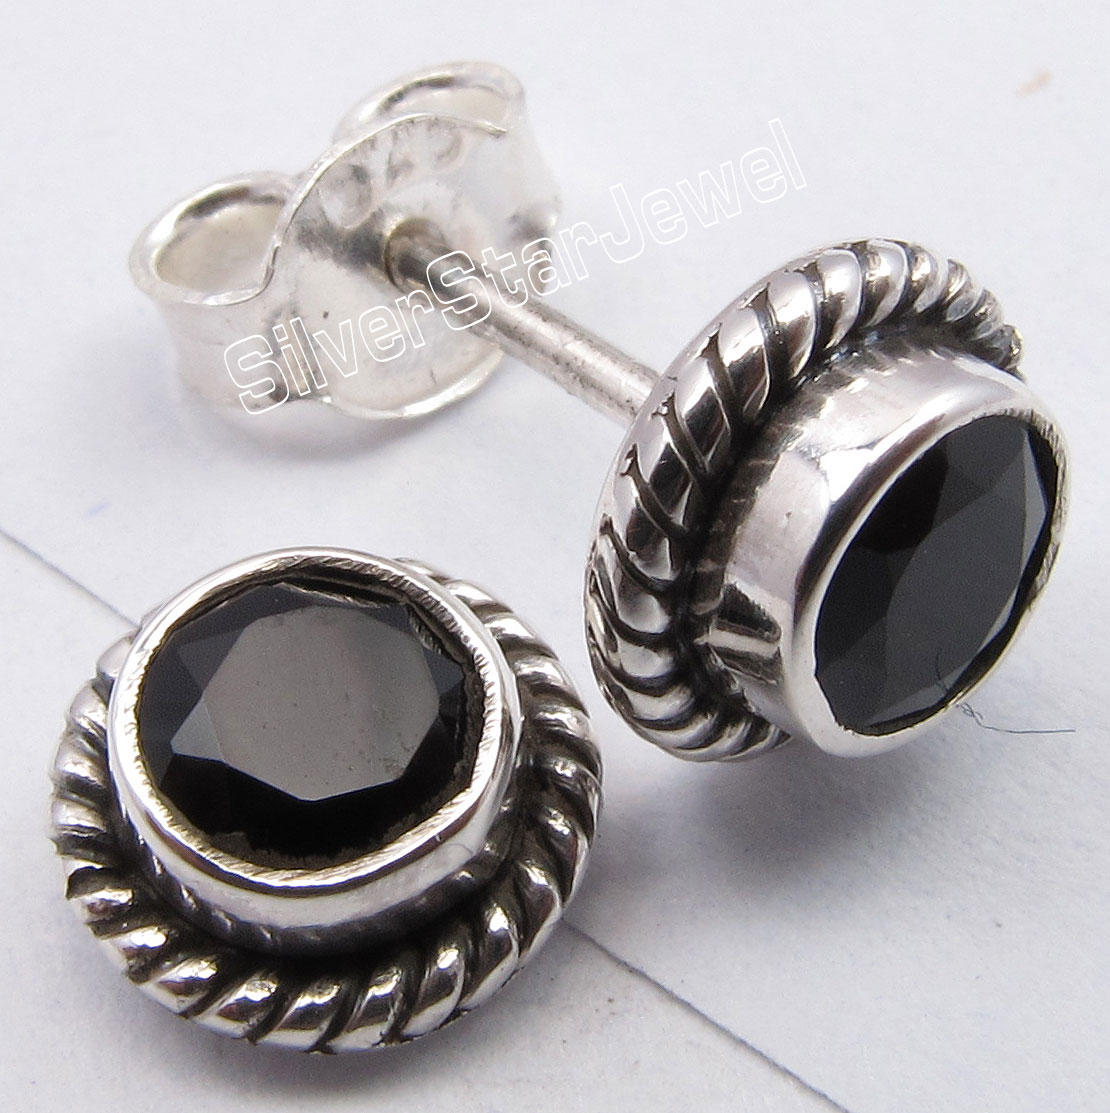 Silver BLACK ONYX Cut GEM STONE Old Style Exquisite s Earrings 0.8CM New1 Pair of Earring pair of exquisite opal embellished square decorated earrings